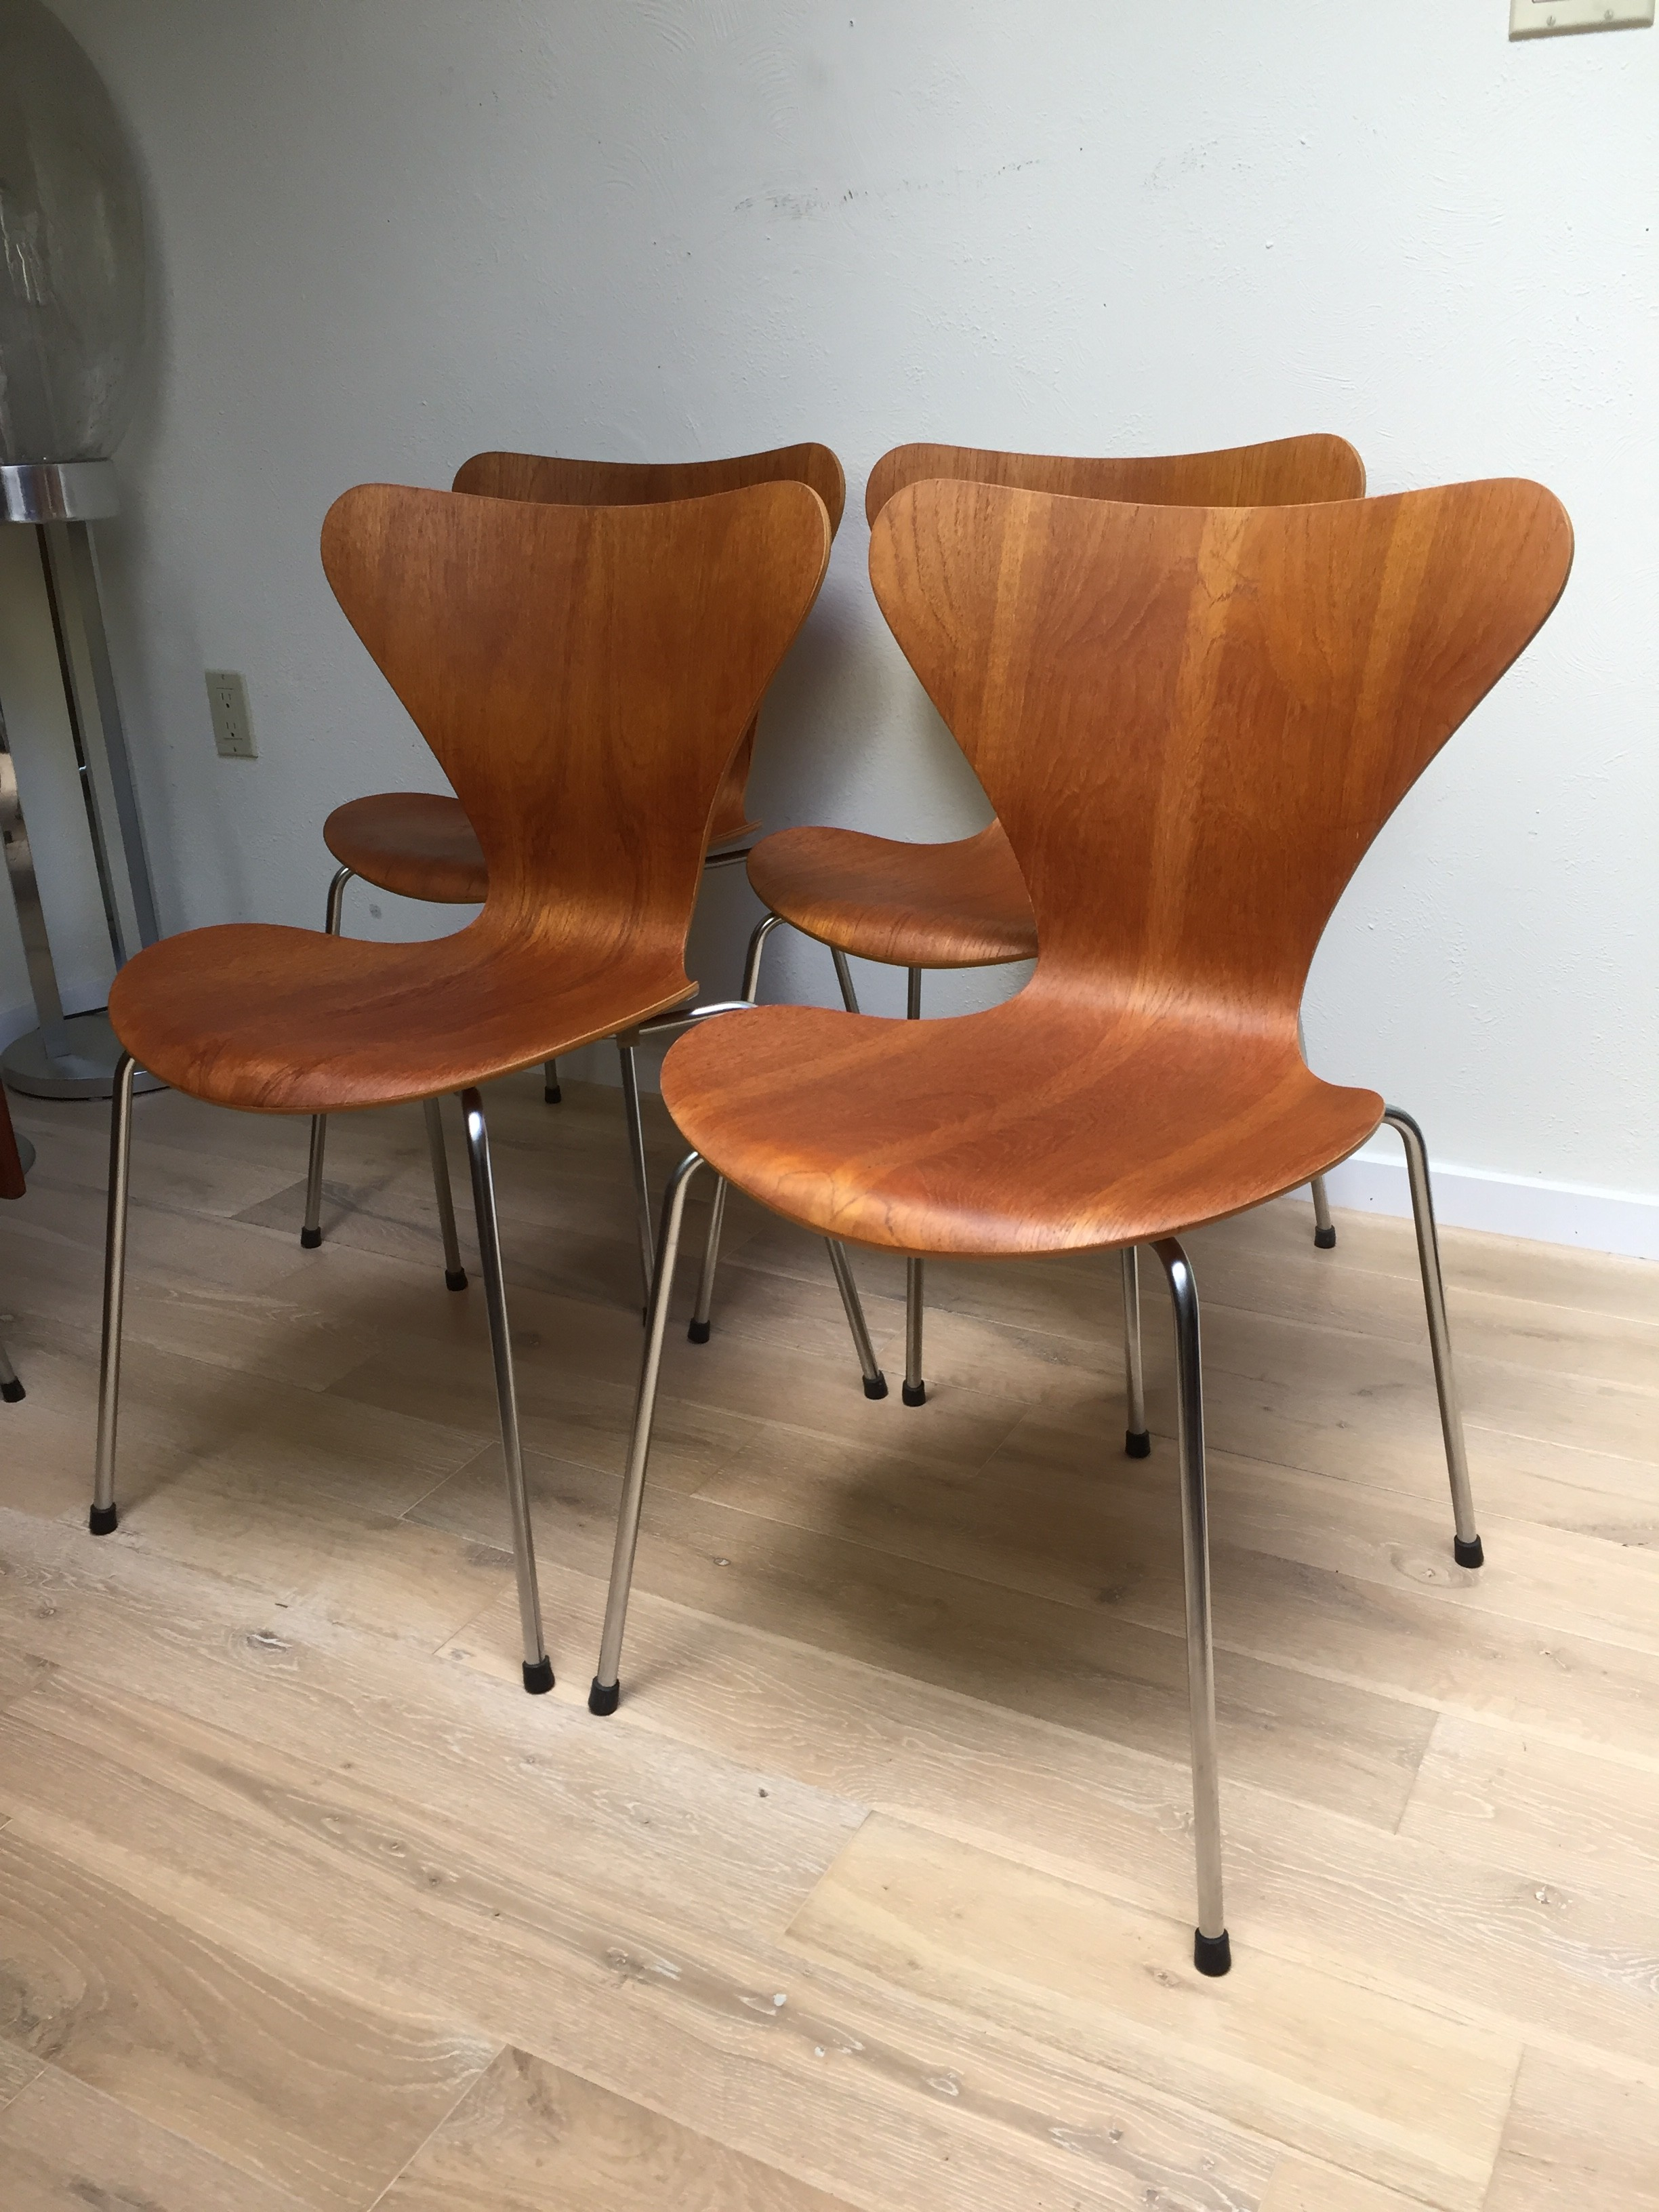 Newly re finished mid century modern series 7 chairs designed by arne jacobsen for